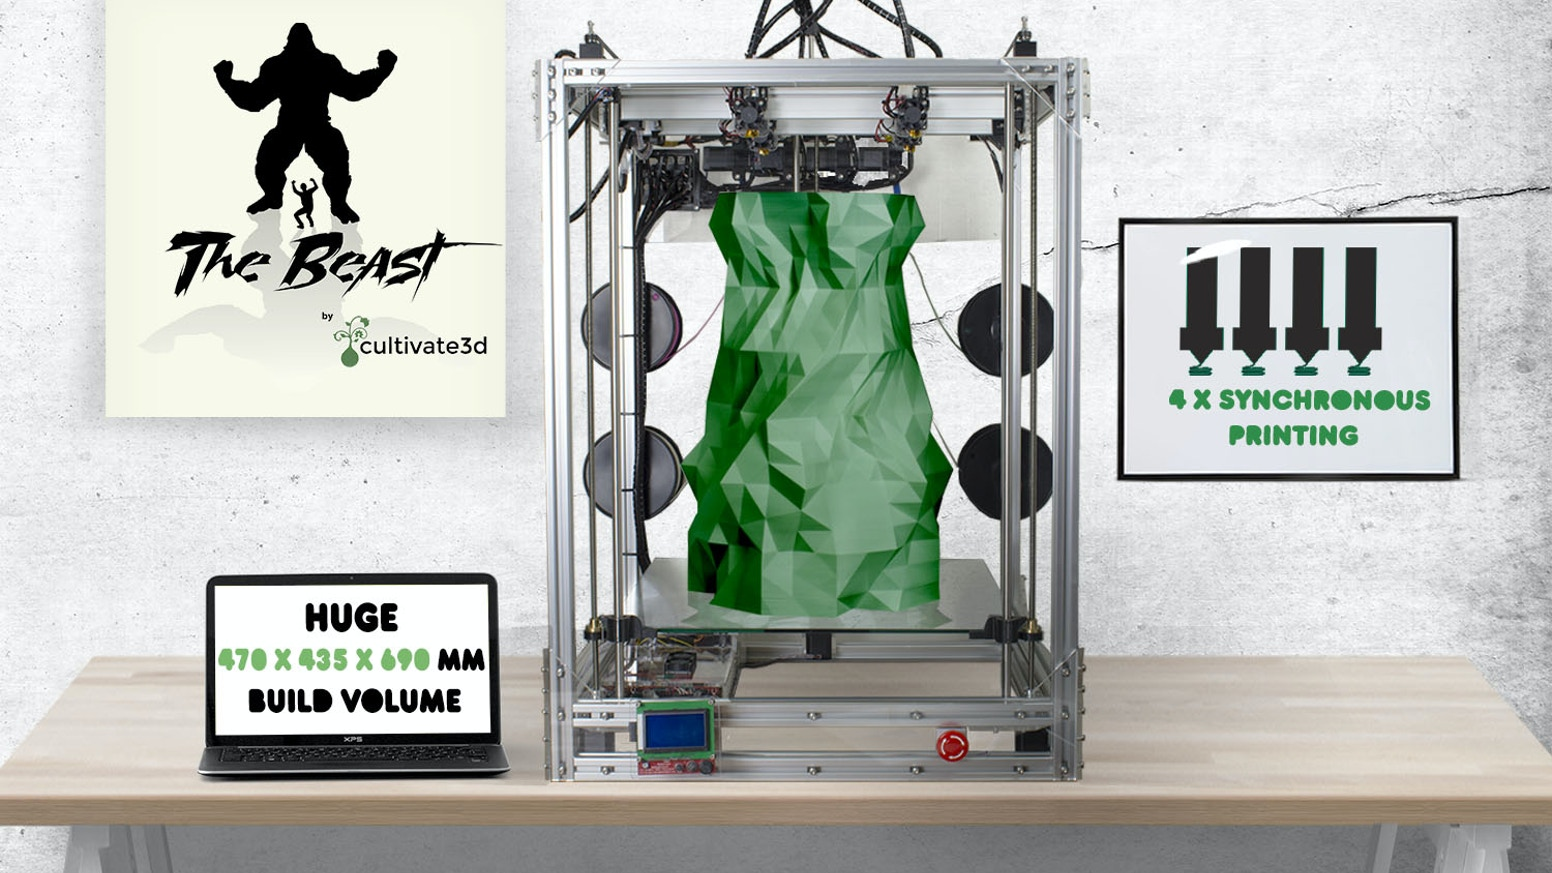 A 3D Printer so large it can print a child and has 4 x Synchronous print heads for duplicating prints.  Available fully built and DIY.